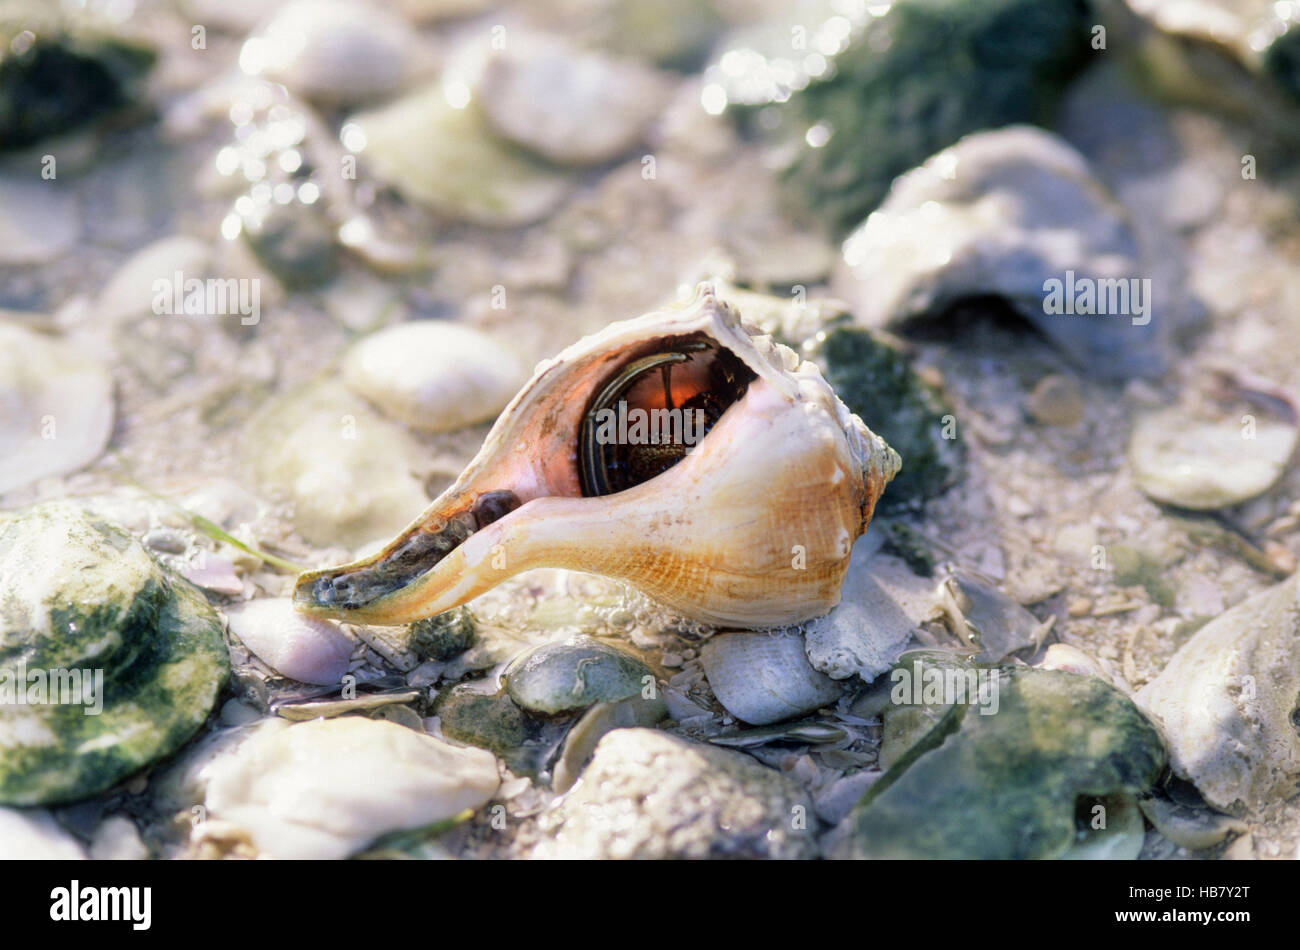 Left-handed Whelk bi-valve seashell also know as the Lightning Whelk. Hermit Crab is living in the shell. Texas - Stock Image